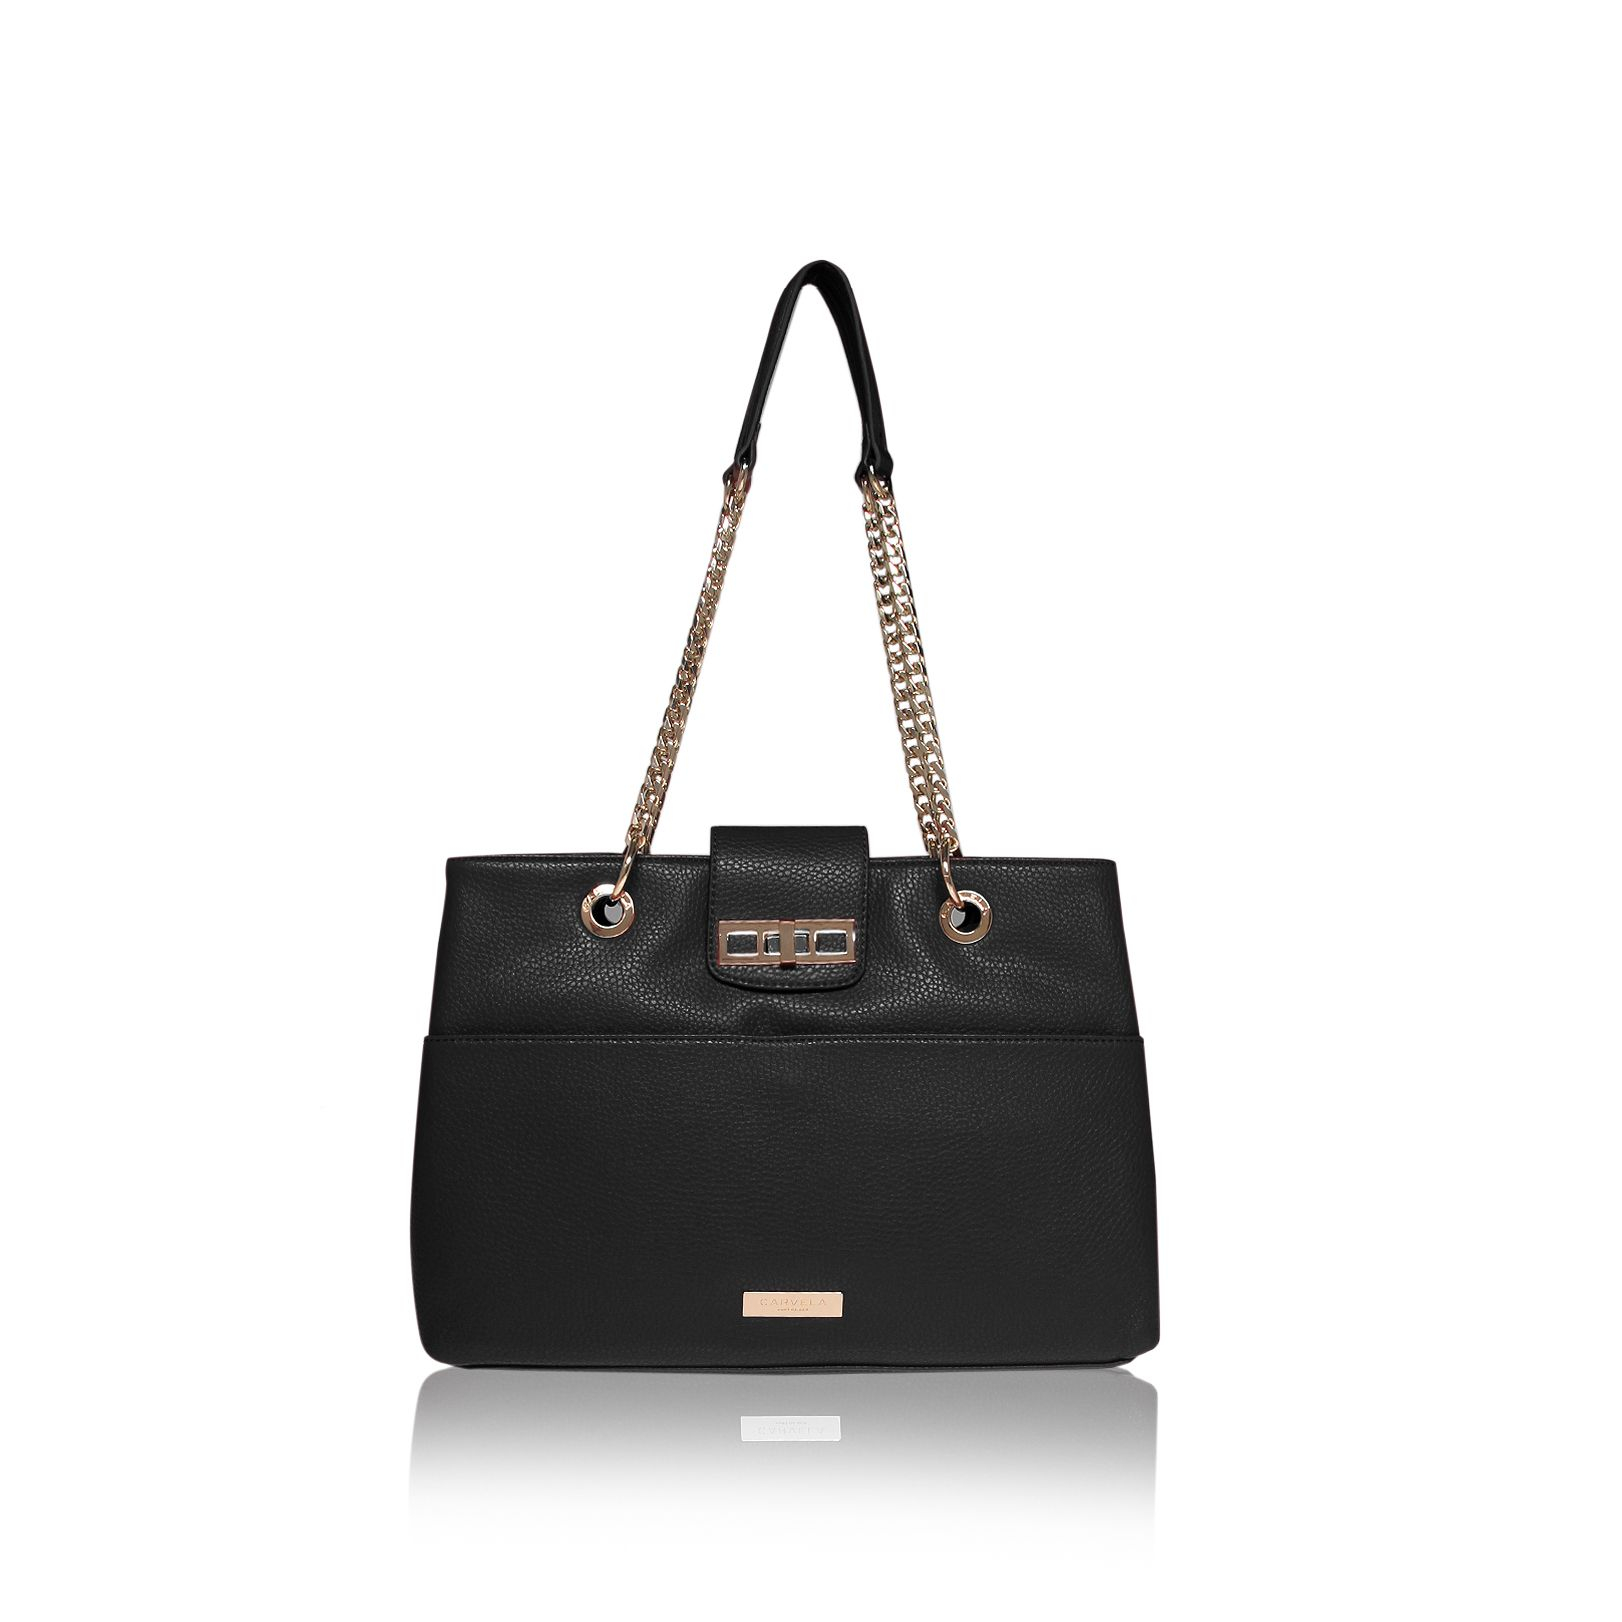 Carvela Kurt Geiger Collette Chain Bag In Black Lyst